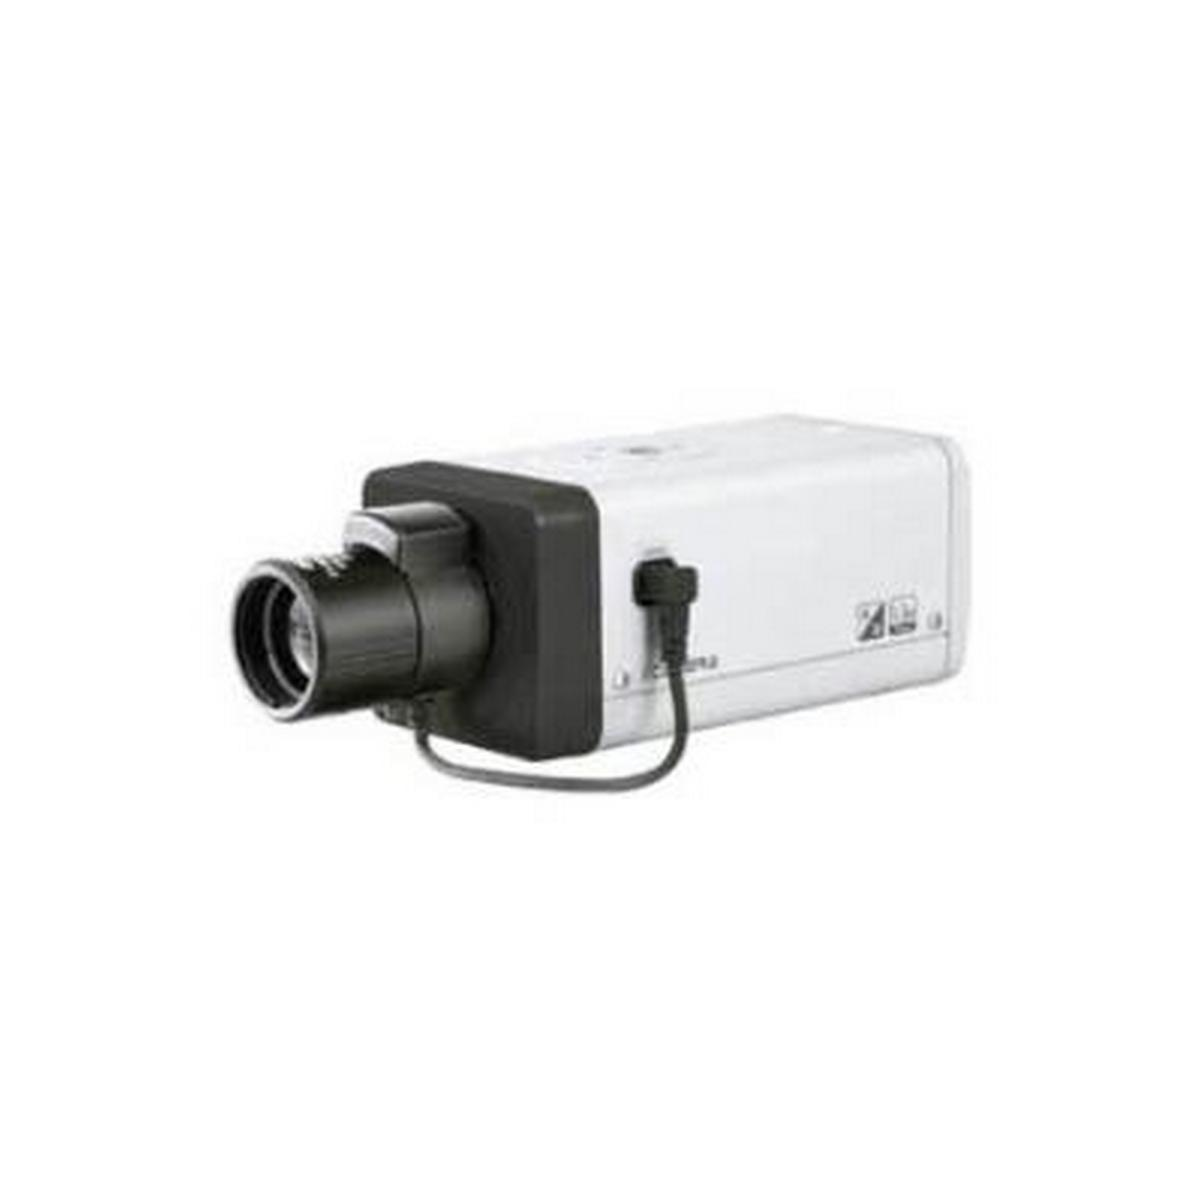 BOX STYLE MEGAPIXEL IP WDR CAMERA, 1.3 MEGAPIXEL, 1080P AT 30 FPS WITH H.264E COMPRESSION, 12VDC/24VAC OR POE 802.3AF - NO POWER SUPPLY OR LENS INCLUDED